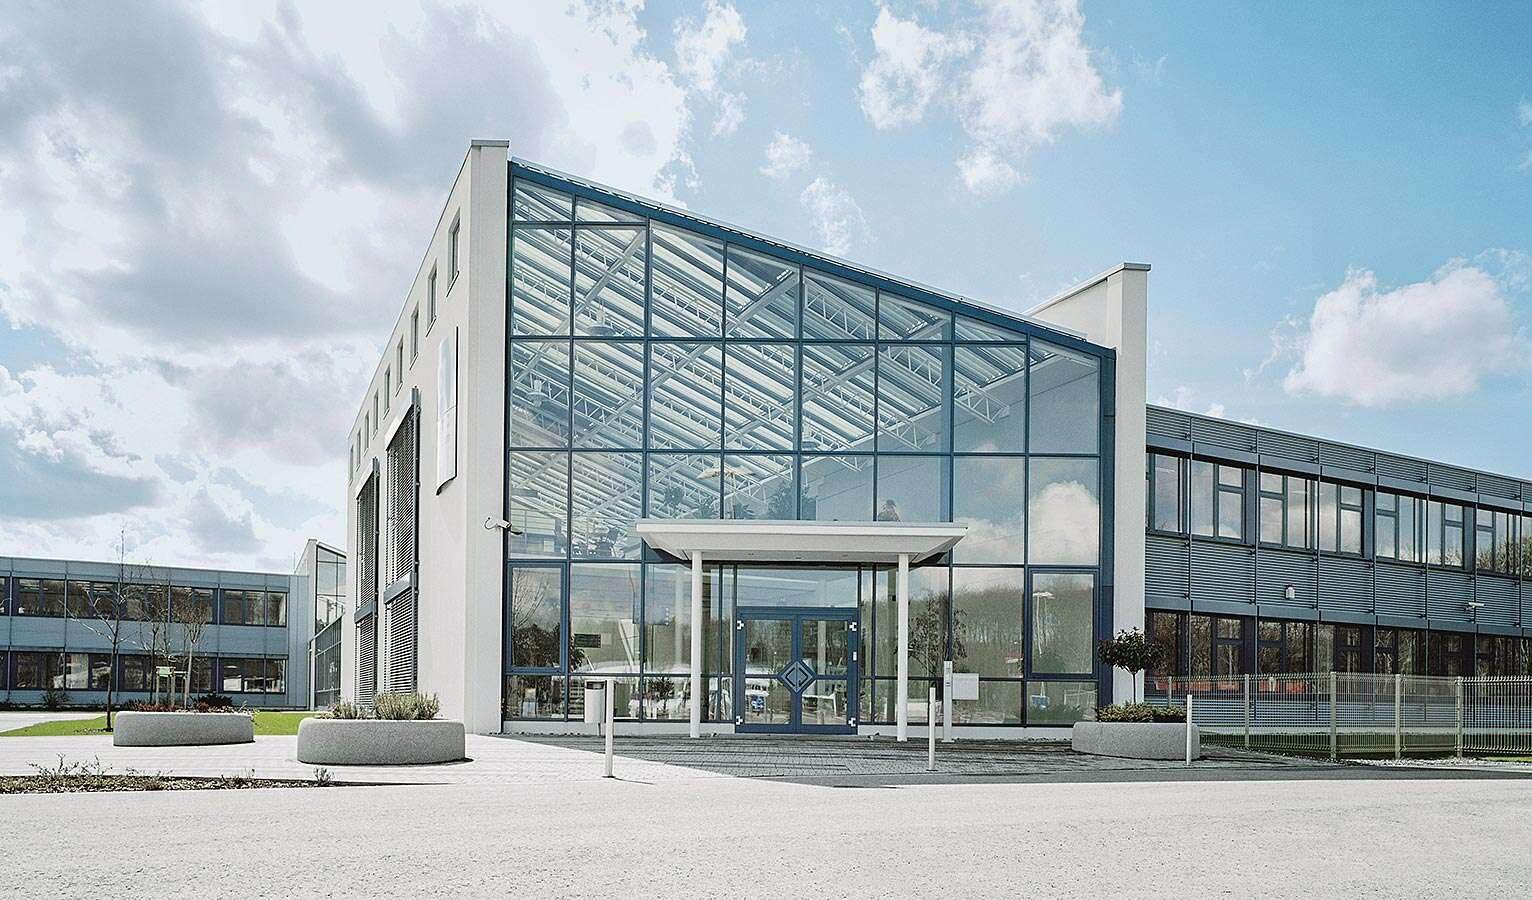 The Festo learning centre in Saar was opened in 1994.